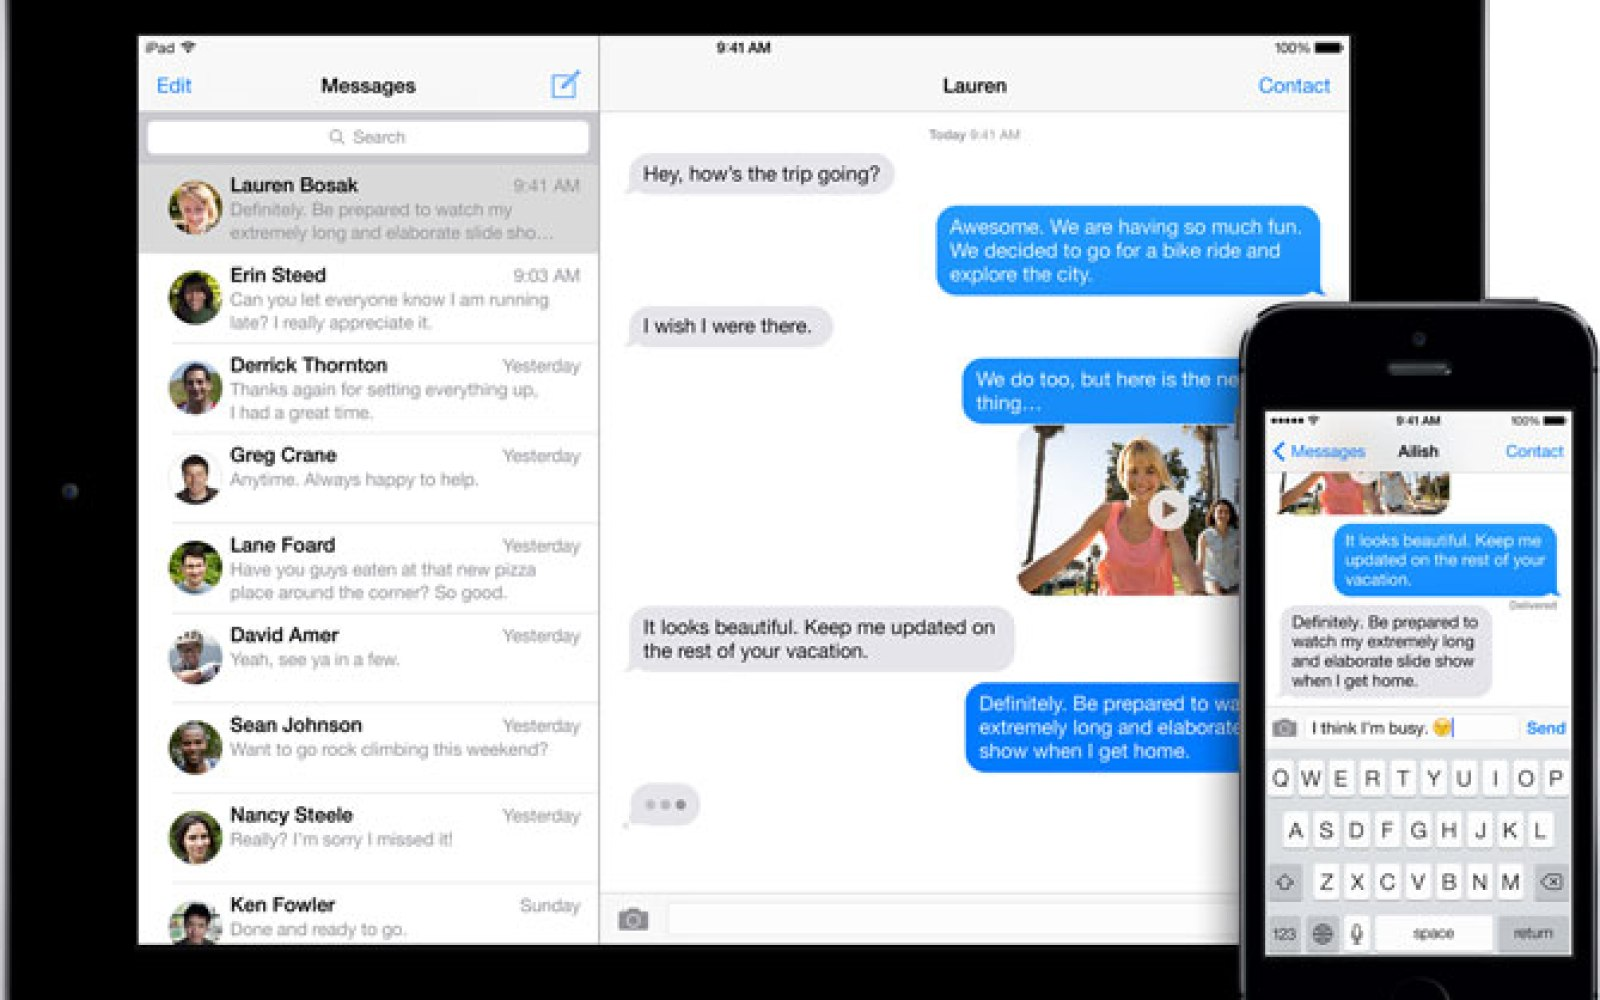 iMessage suffering from a widespread outage, many users unable to send/receive messages